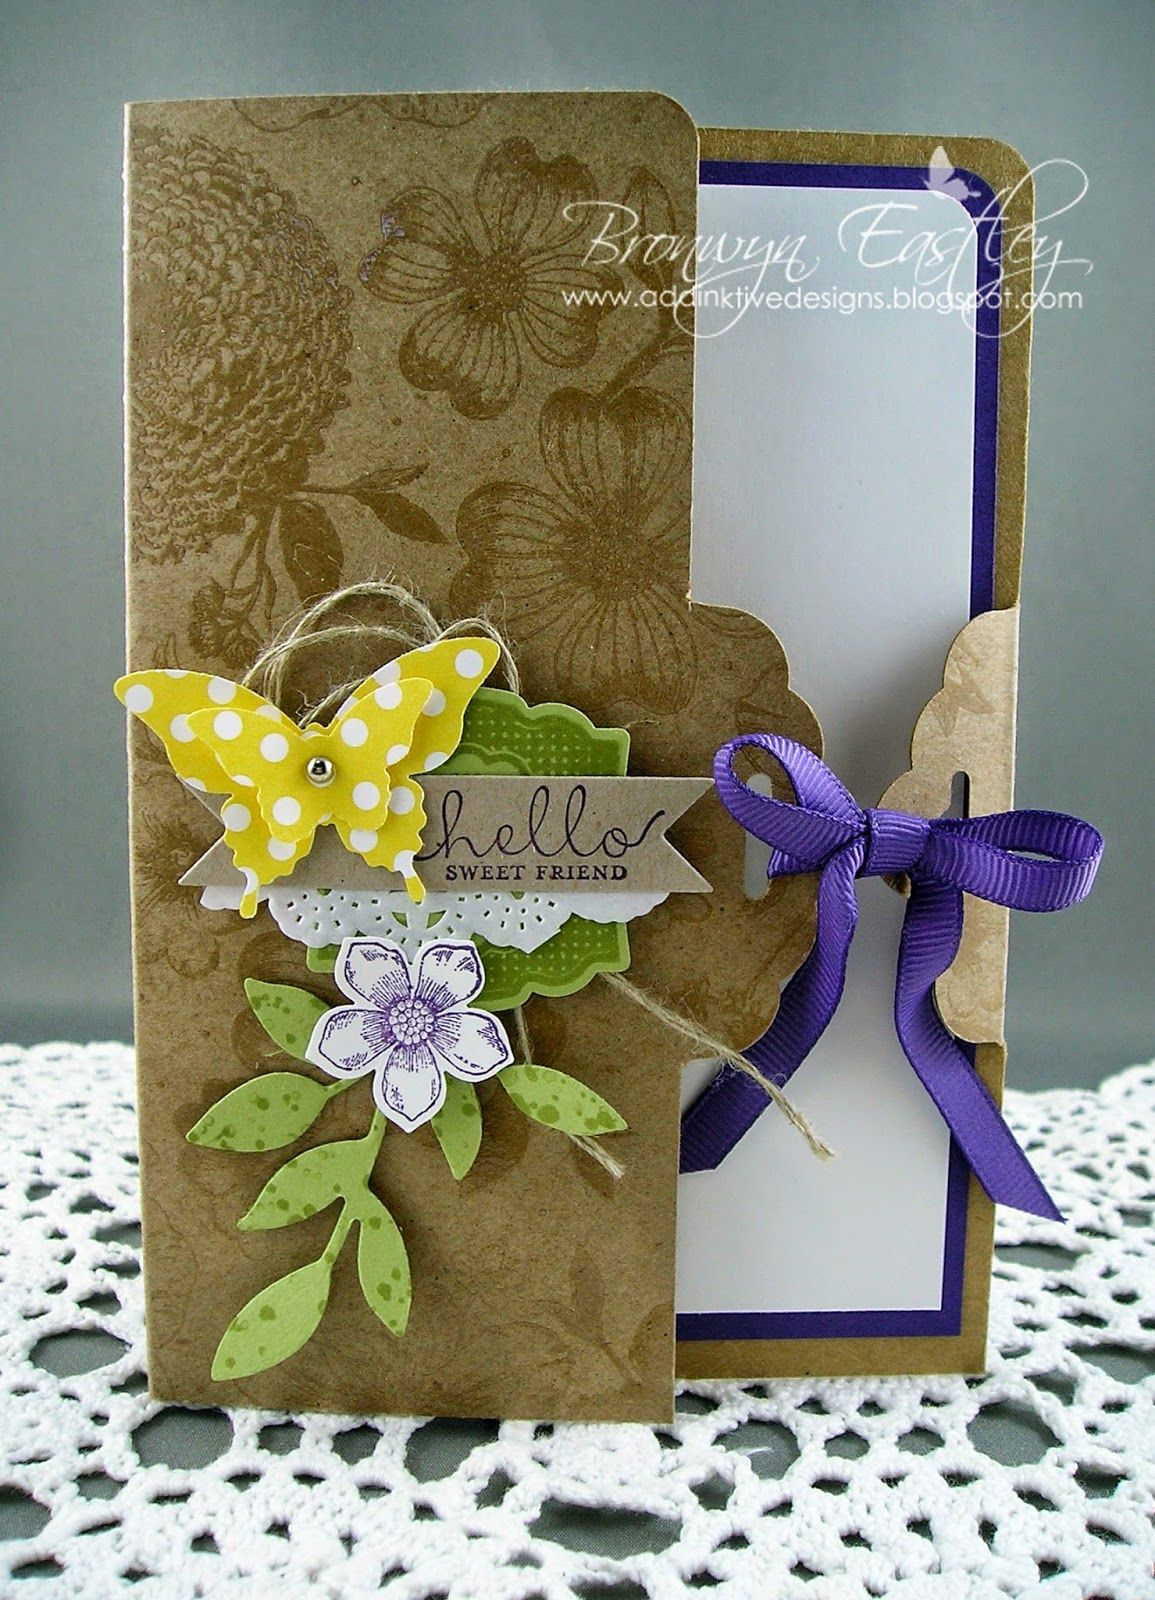 Addinktive designs stampinuup pinterest cards minis and box